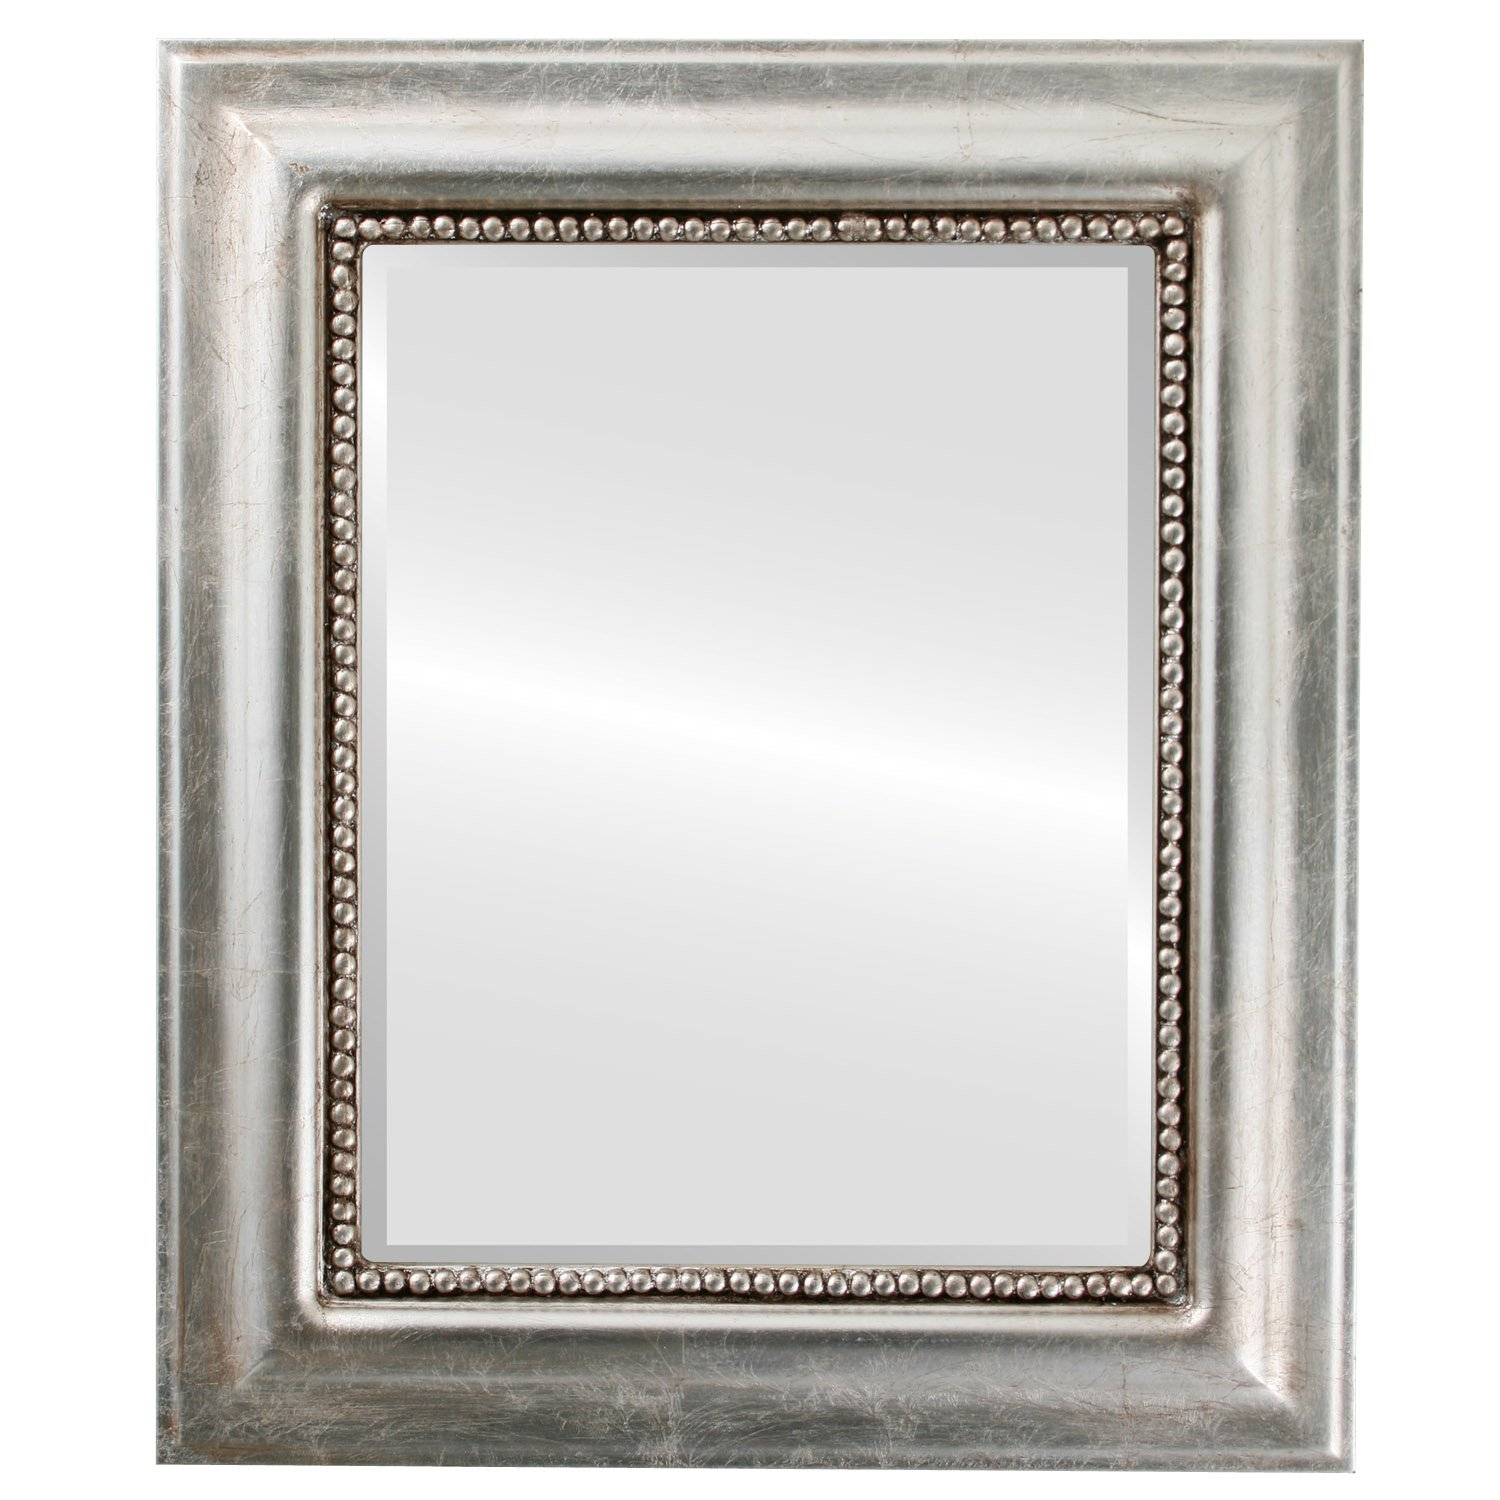 Rectangle Wall Mirror for Home Decor, Bedroom, Living Room, Bathroom |  Decorative Framed Beveled Mirror | Heritage Style - Silver Leaf with Brown  ...